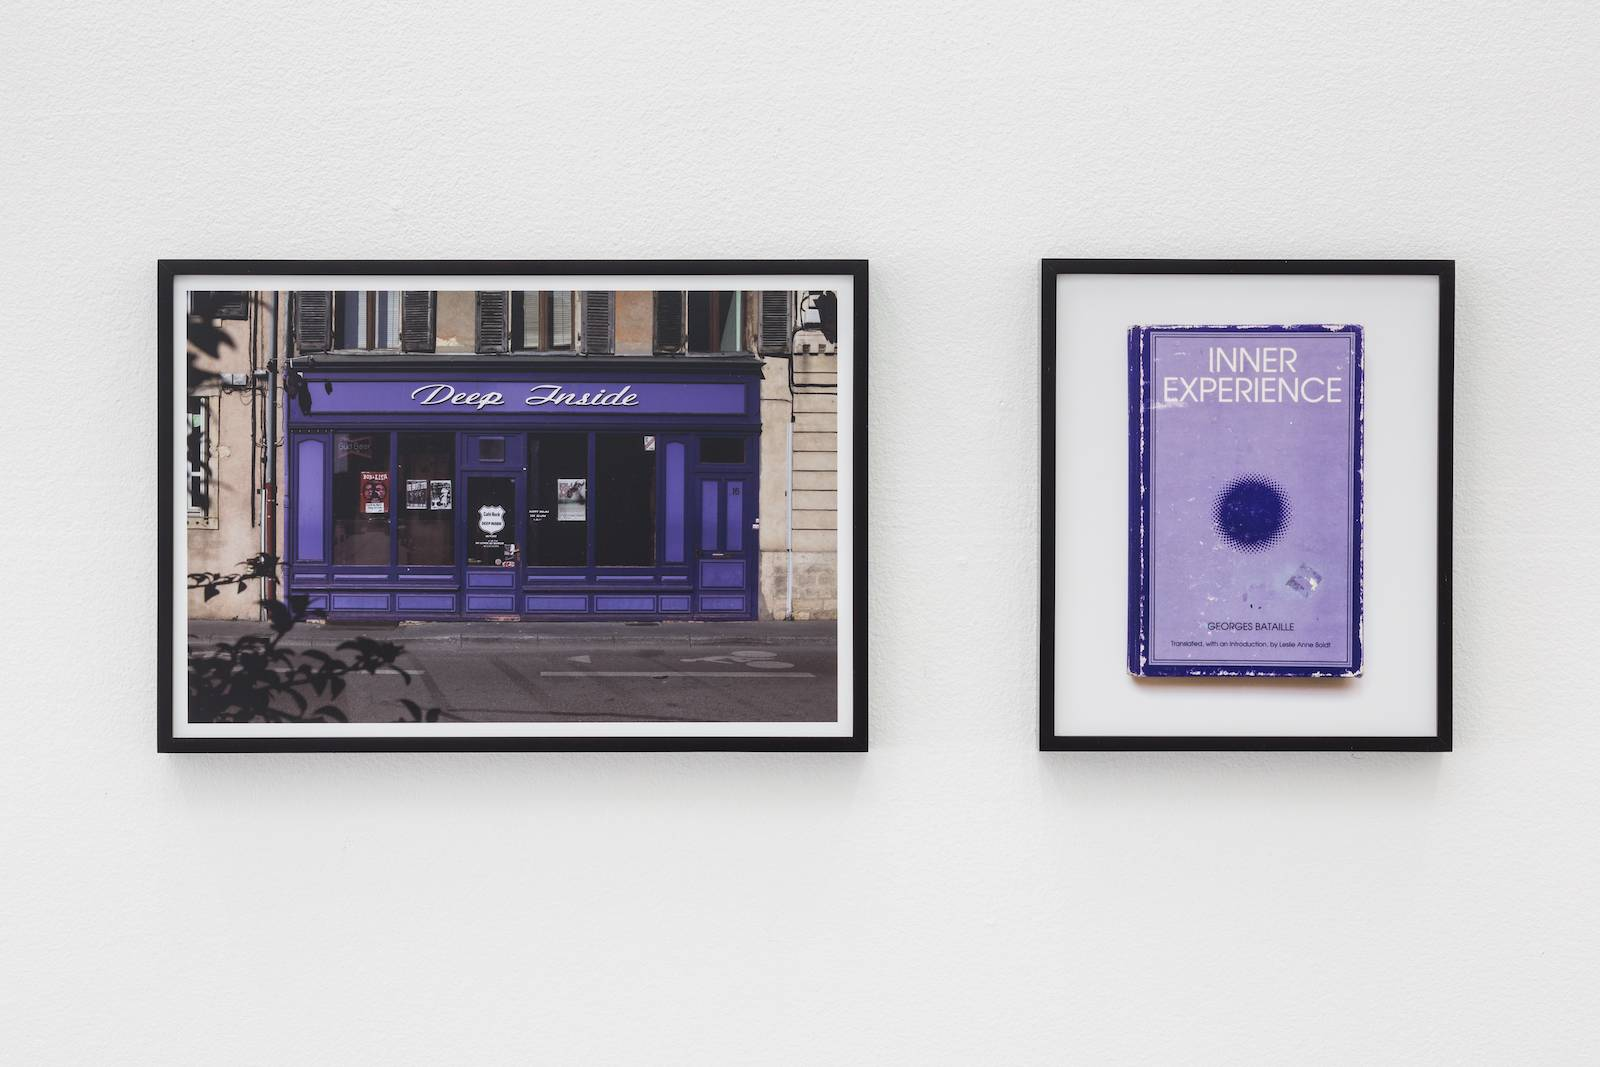 Deep Inside Inner Experience, 2009, photograph diptych in artist's frames, 44.45 x 30.48 cm and 25.4 x 30.48, ed. 5